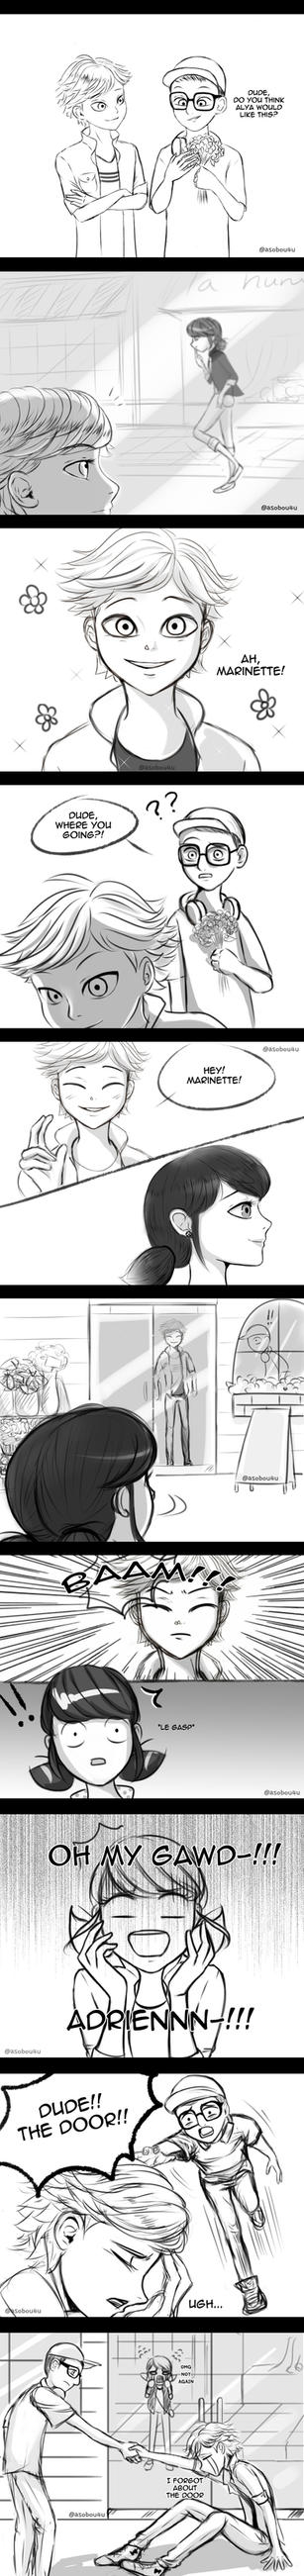 Whats going on Adrien? (Part3) by Asobou4Ulquiorra